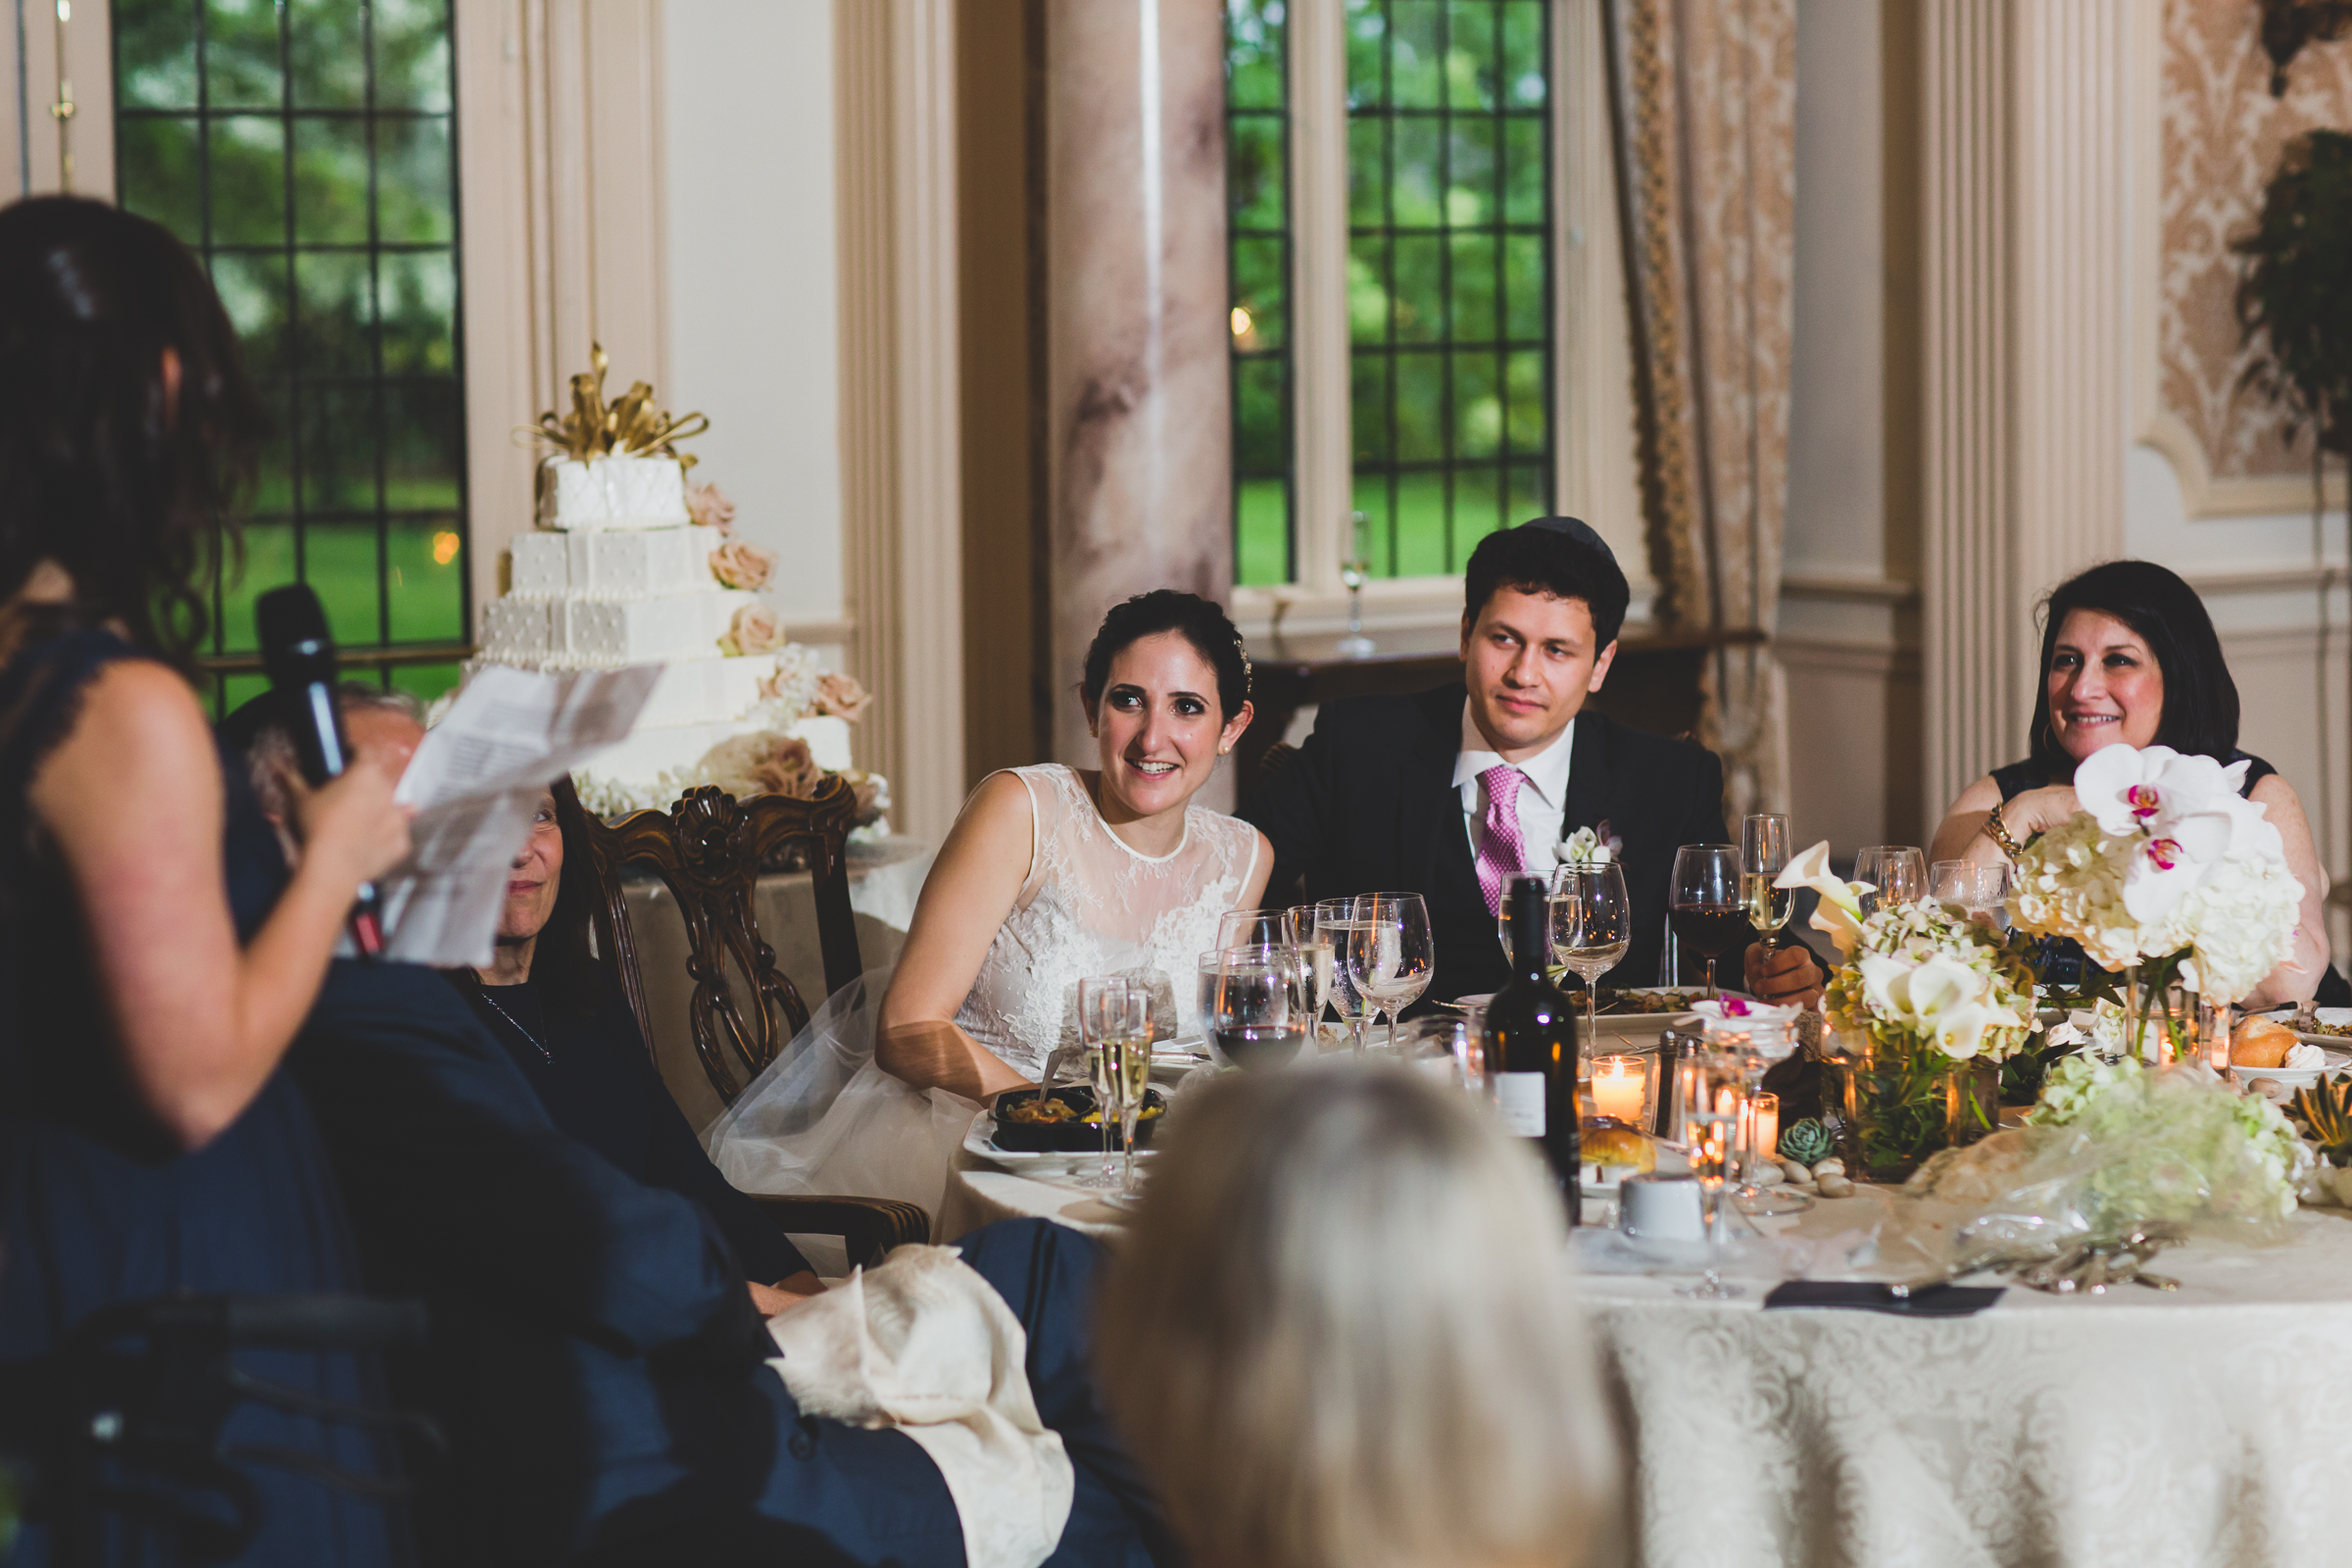 Pleasantdale-Chateau-New-Jersey-Wedding-NJ-and-New-York-Documentary-Wedding-Photographer-93.jpg